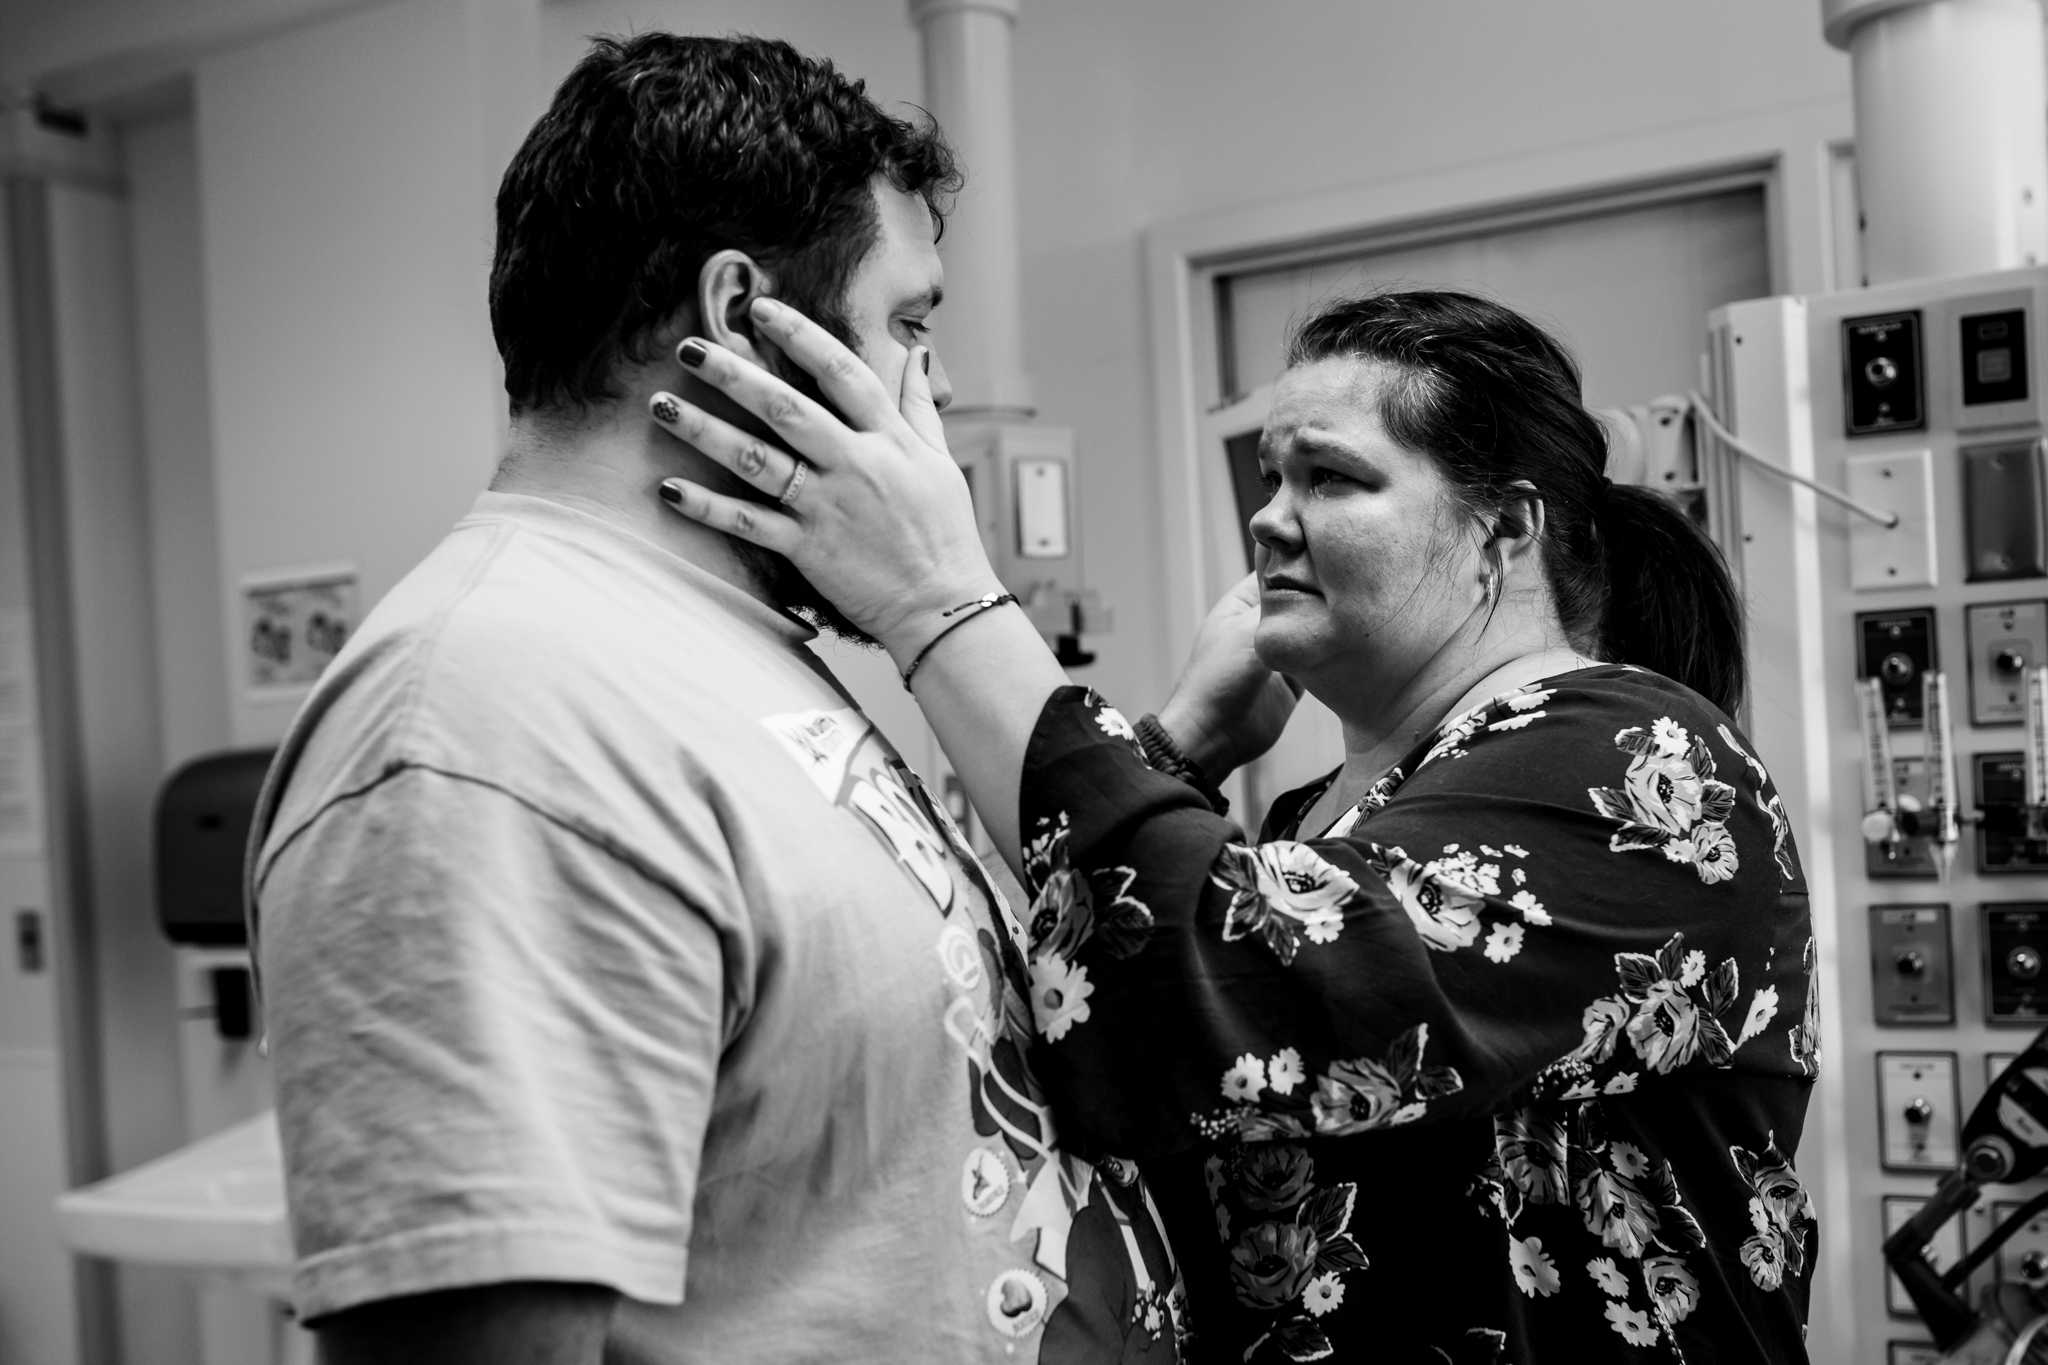 husband and wife look to each other for support